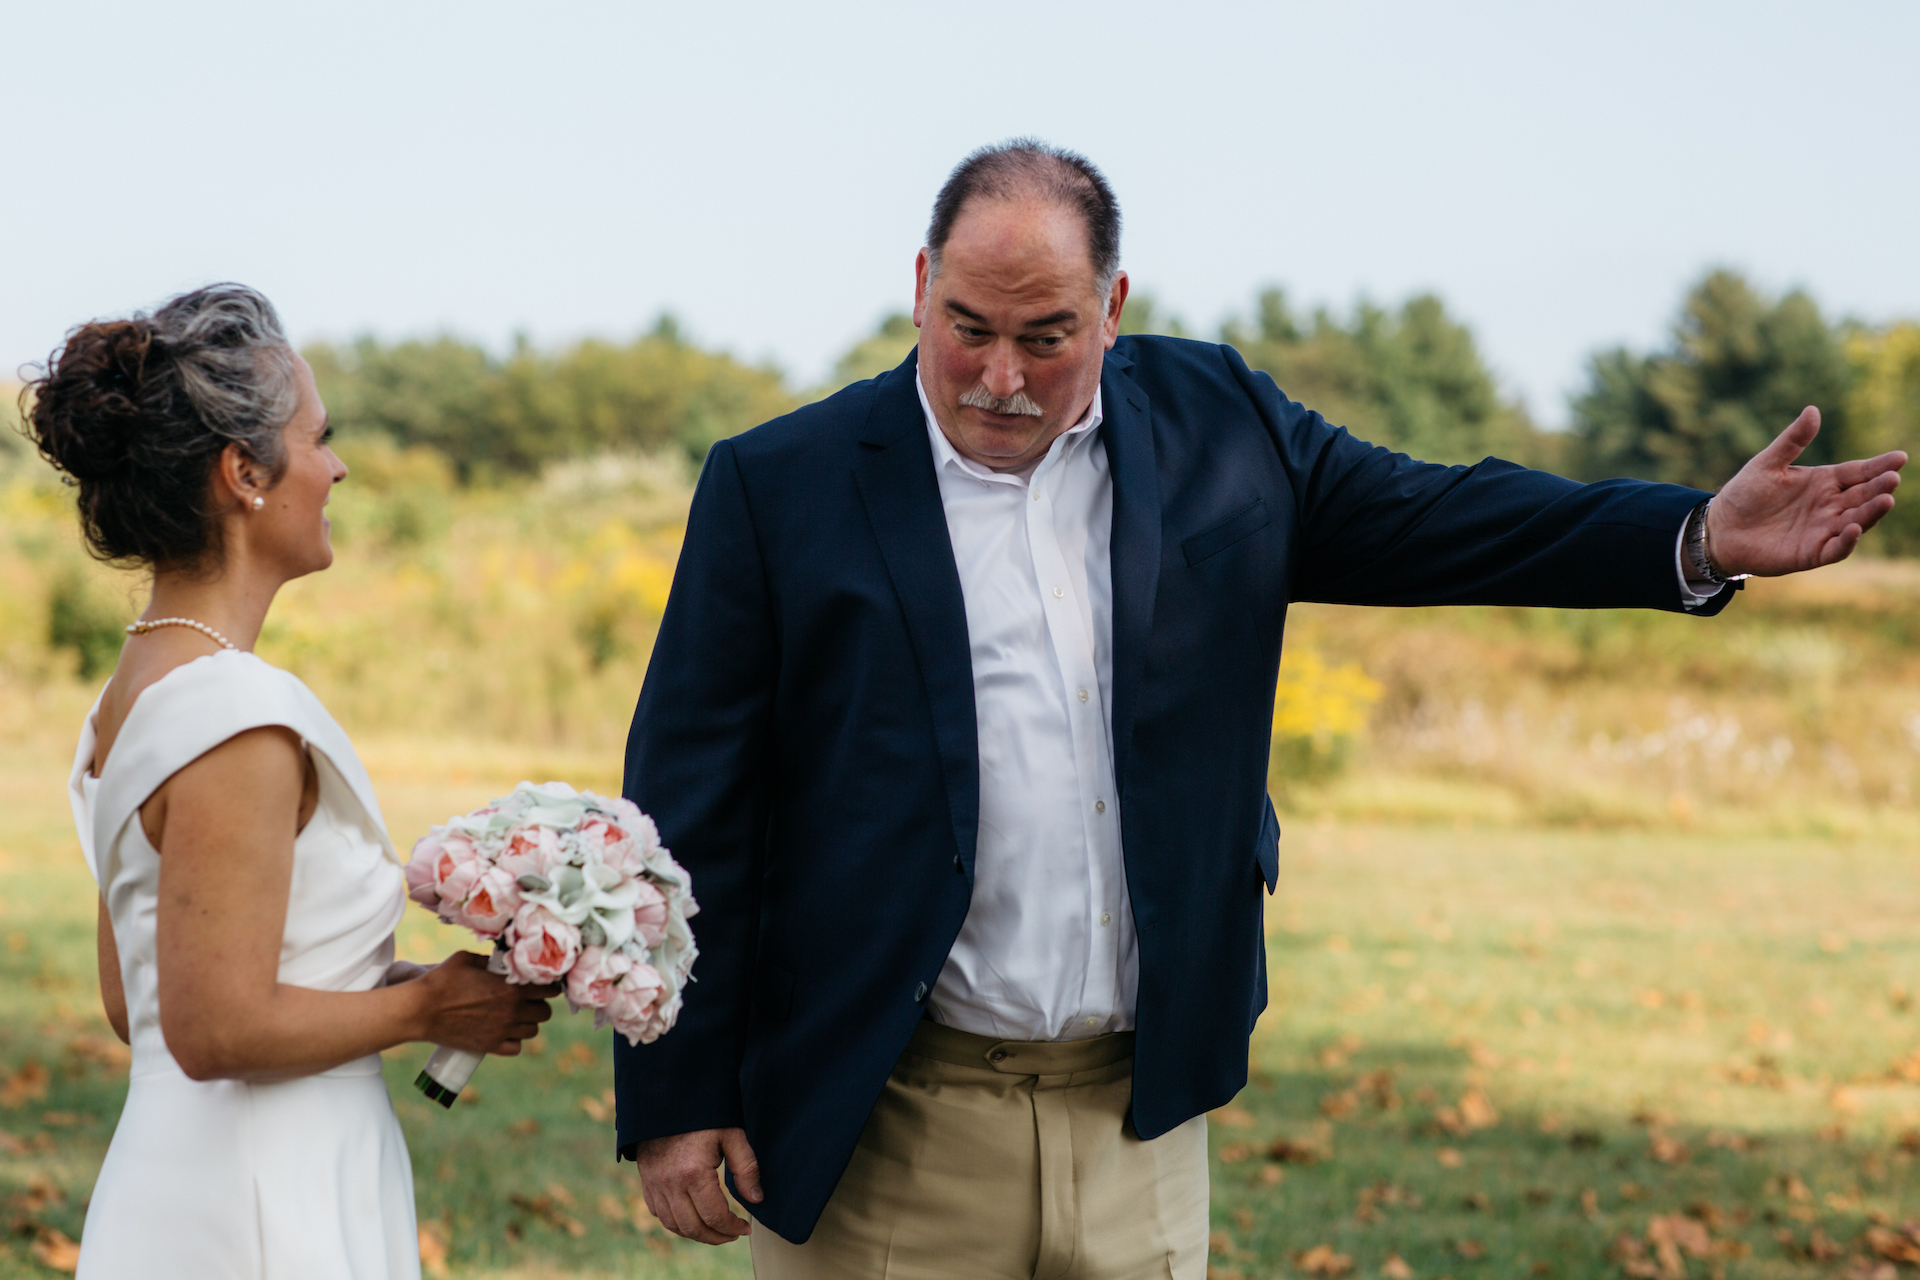 Elopement Photography from Valley Forge in Pennsylvania | The bride was taken by one of her best friends to the aisle